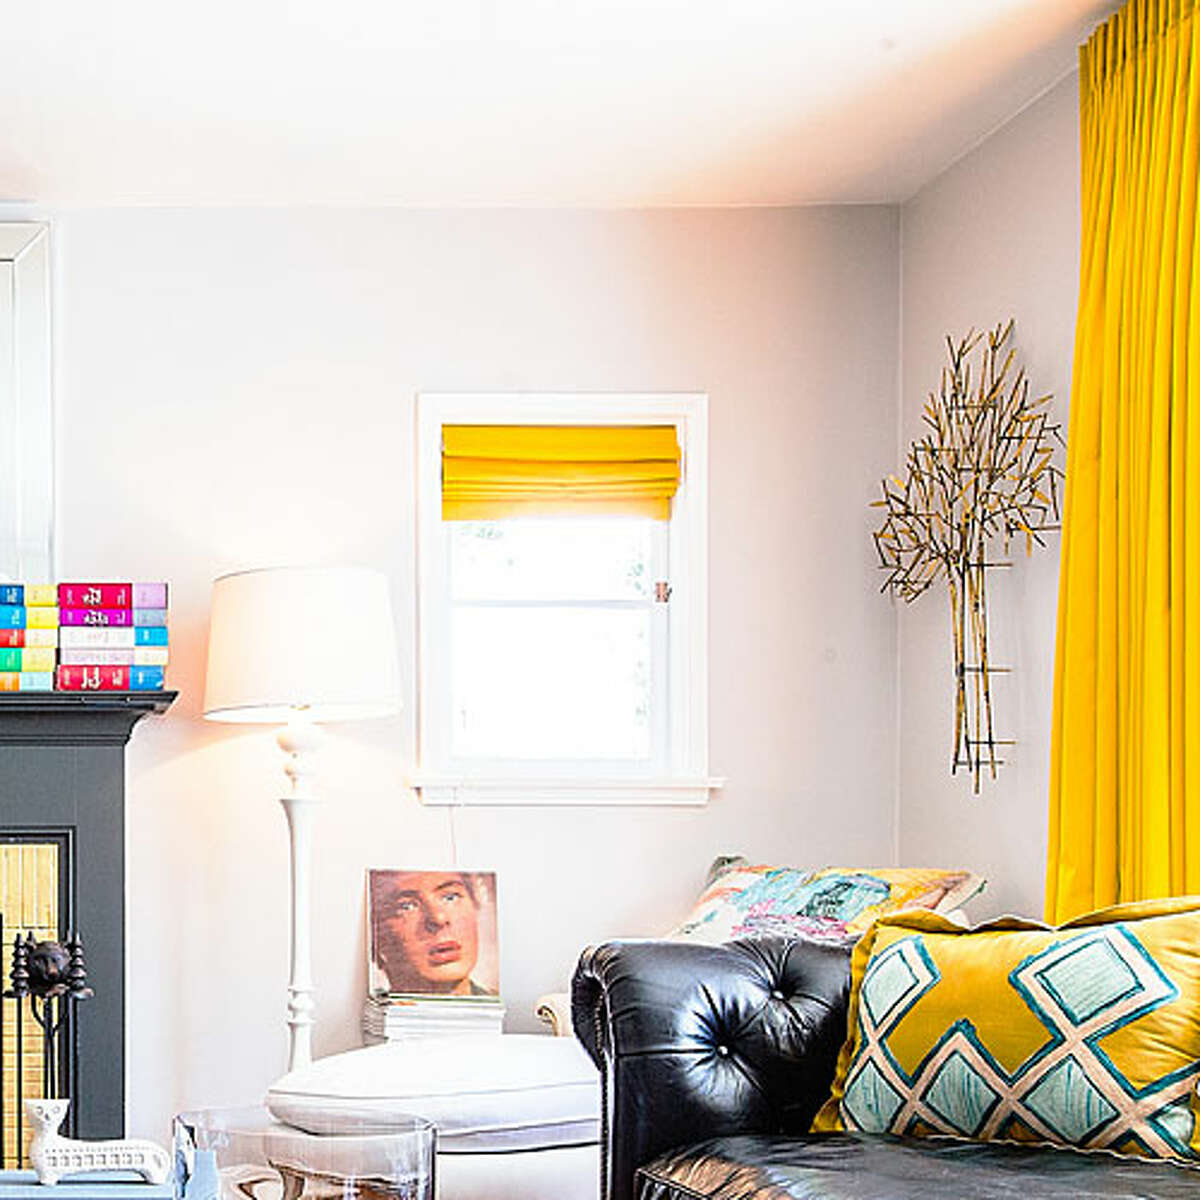 Set a neutral backdrop A cool gray paint on the wall-this one has a touch of blue-looks crisp in most lights and serves as a solid base for bolder touches like the yellow elements shown here. Stone RLUL221; ralphlaurenhome.comRead more: Top trips in California